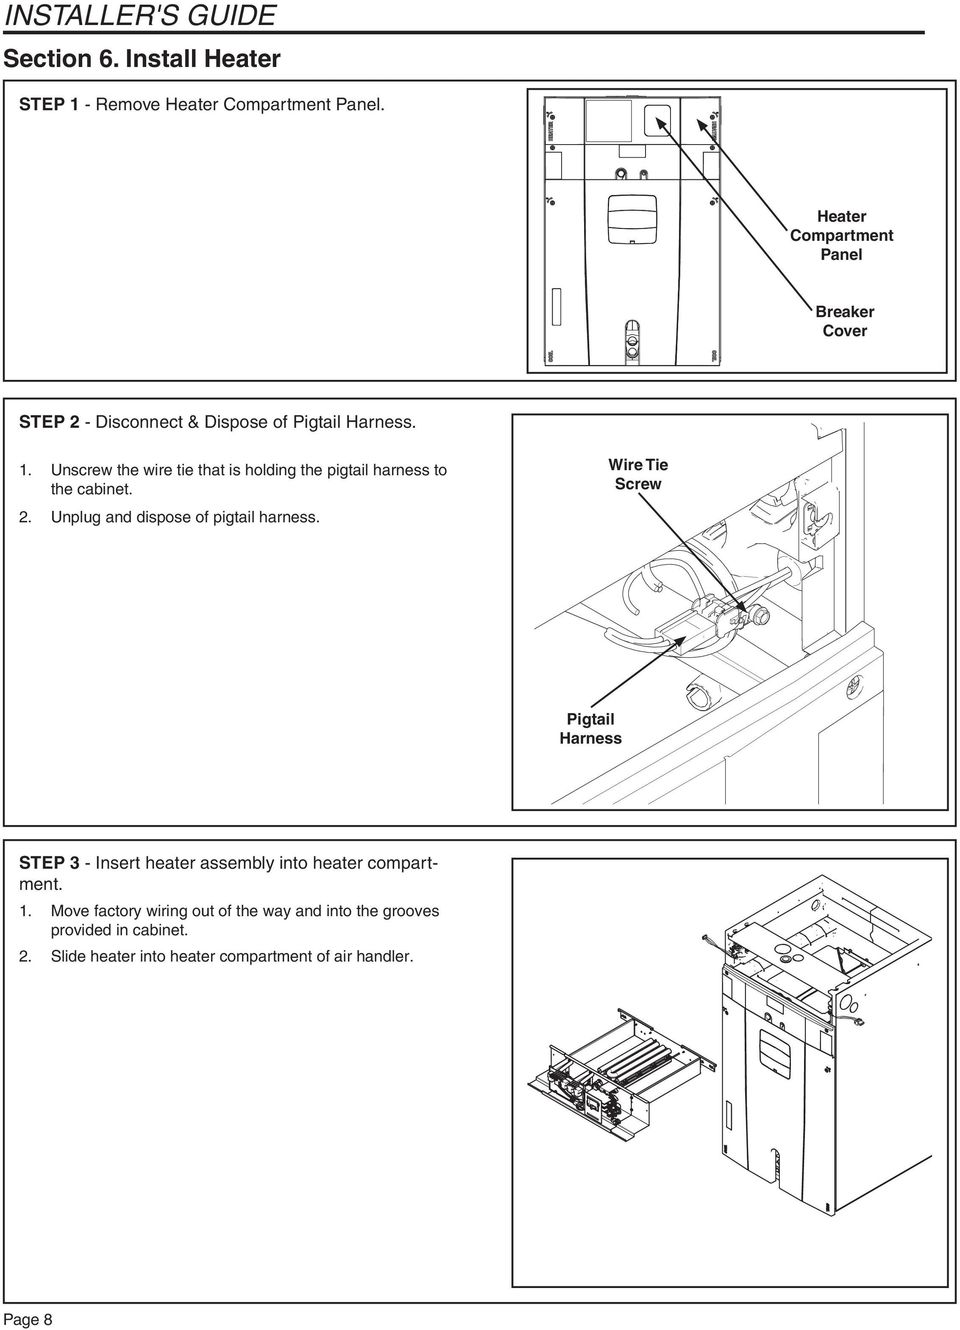 Installers Guide Supplementary Electric Heaters 18 Gj08d1 1 Table Truck Heater Wiring Diagram Besides Garage Door Opener Unscrew The Wire Tie That Is Holding Pigtail Harness To Cabinet 2